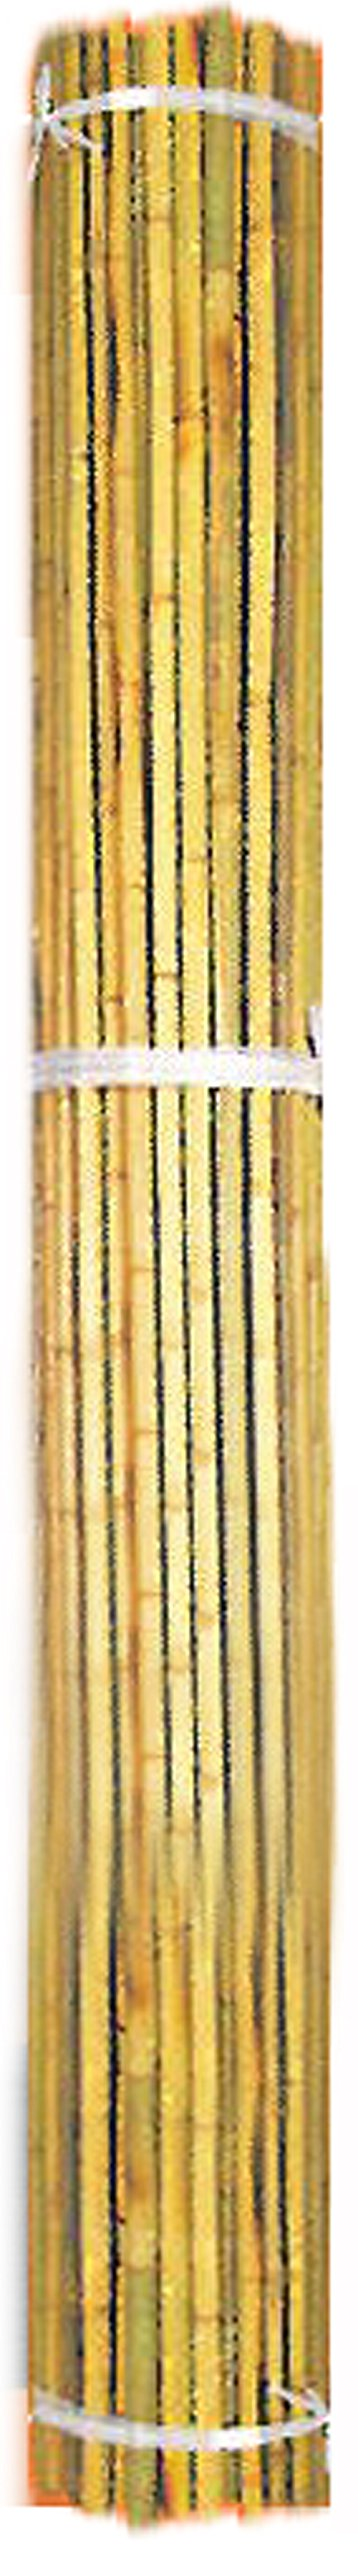 Bond Natural Bamboo Bulk Stake, 0.5'' x 6'